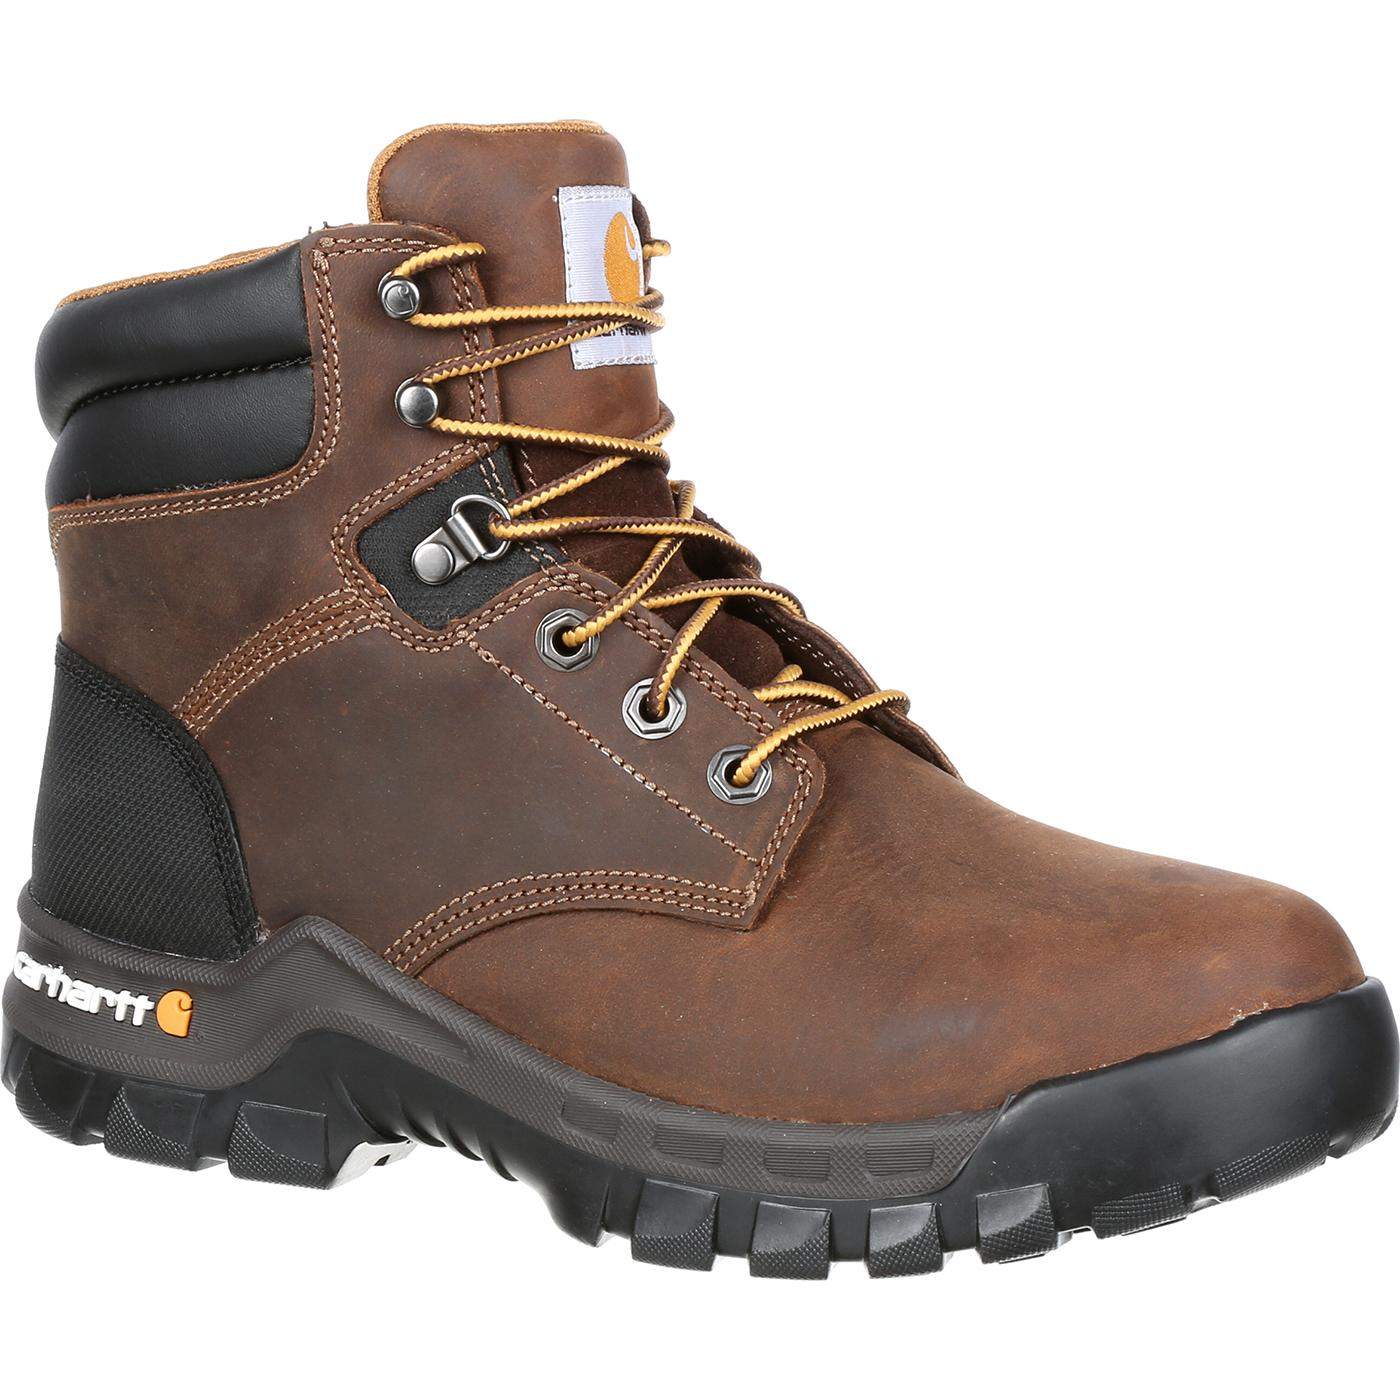 a0c859945dd Carhartt Rugged Flex® Composite Toe Work Boot